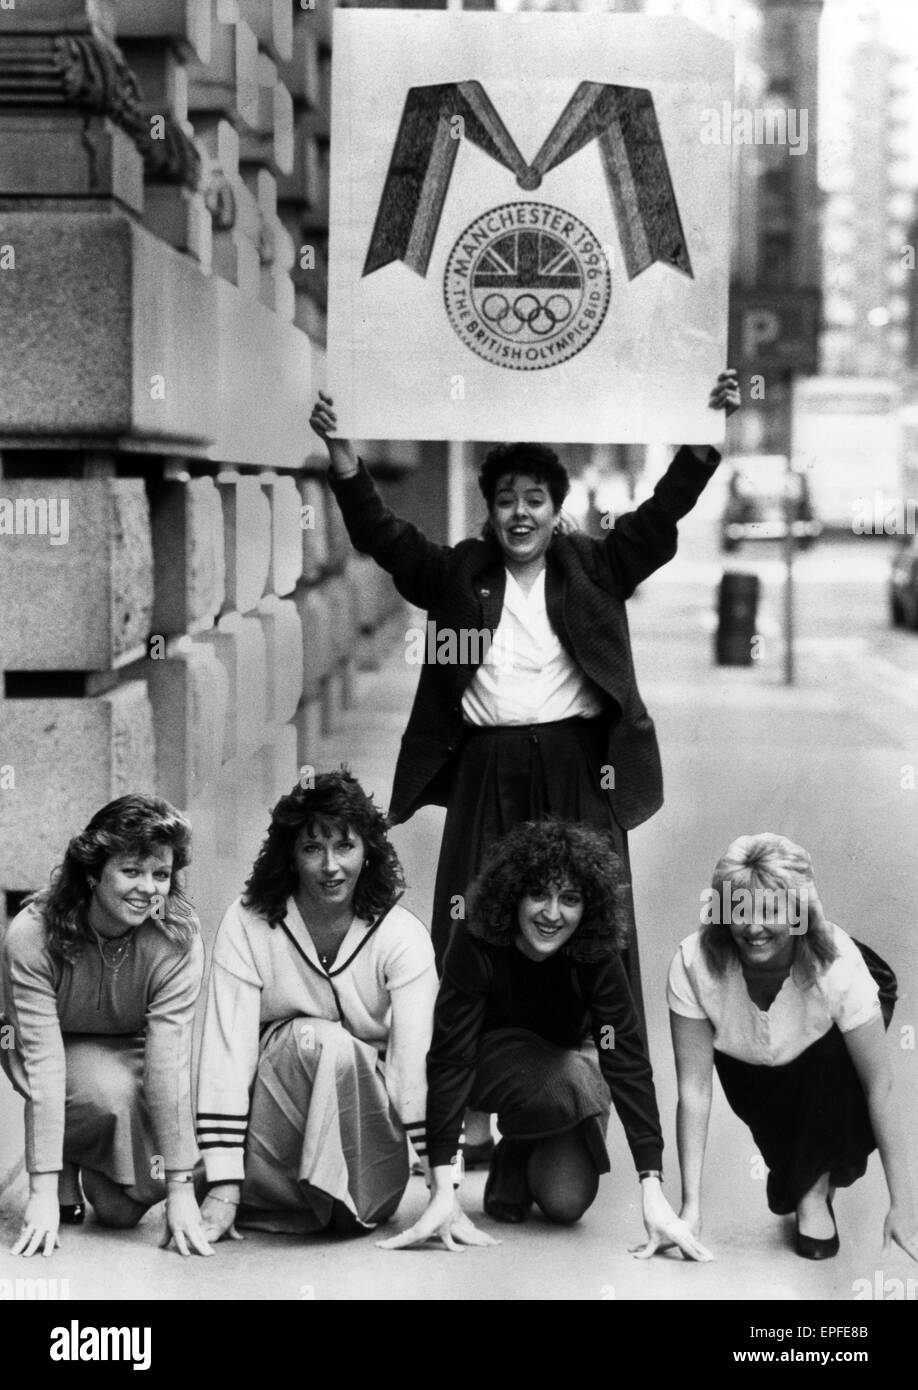 Manchester Olympic Bid for the 1996 Games, 15 March 1990.  Olympic Bid girls. - Stock Image